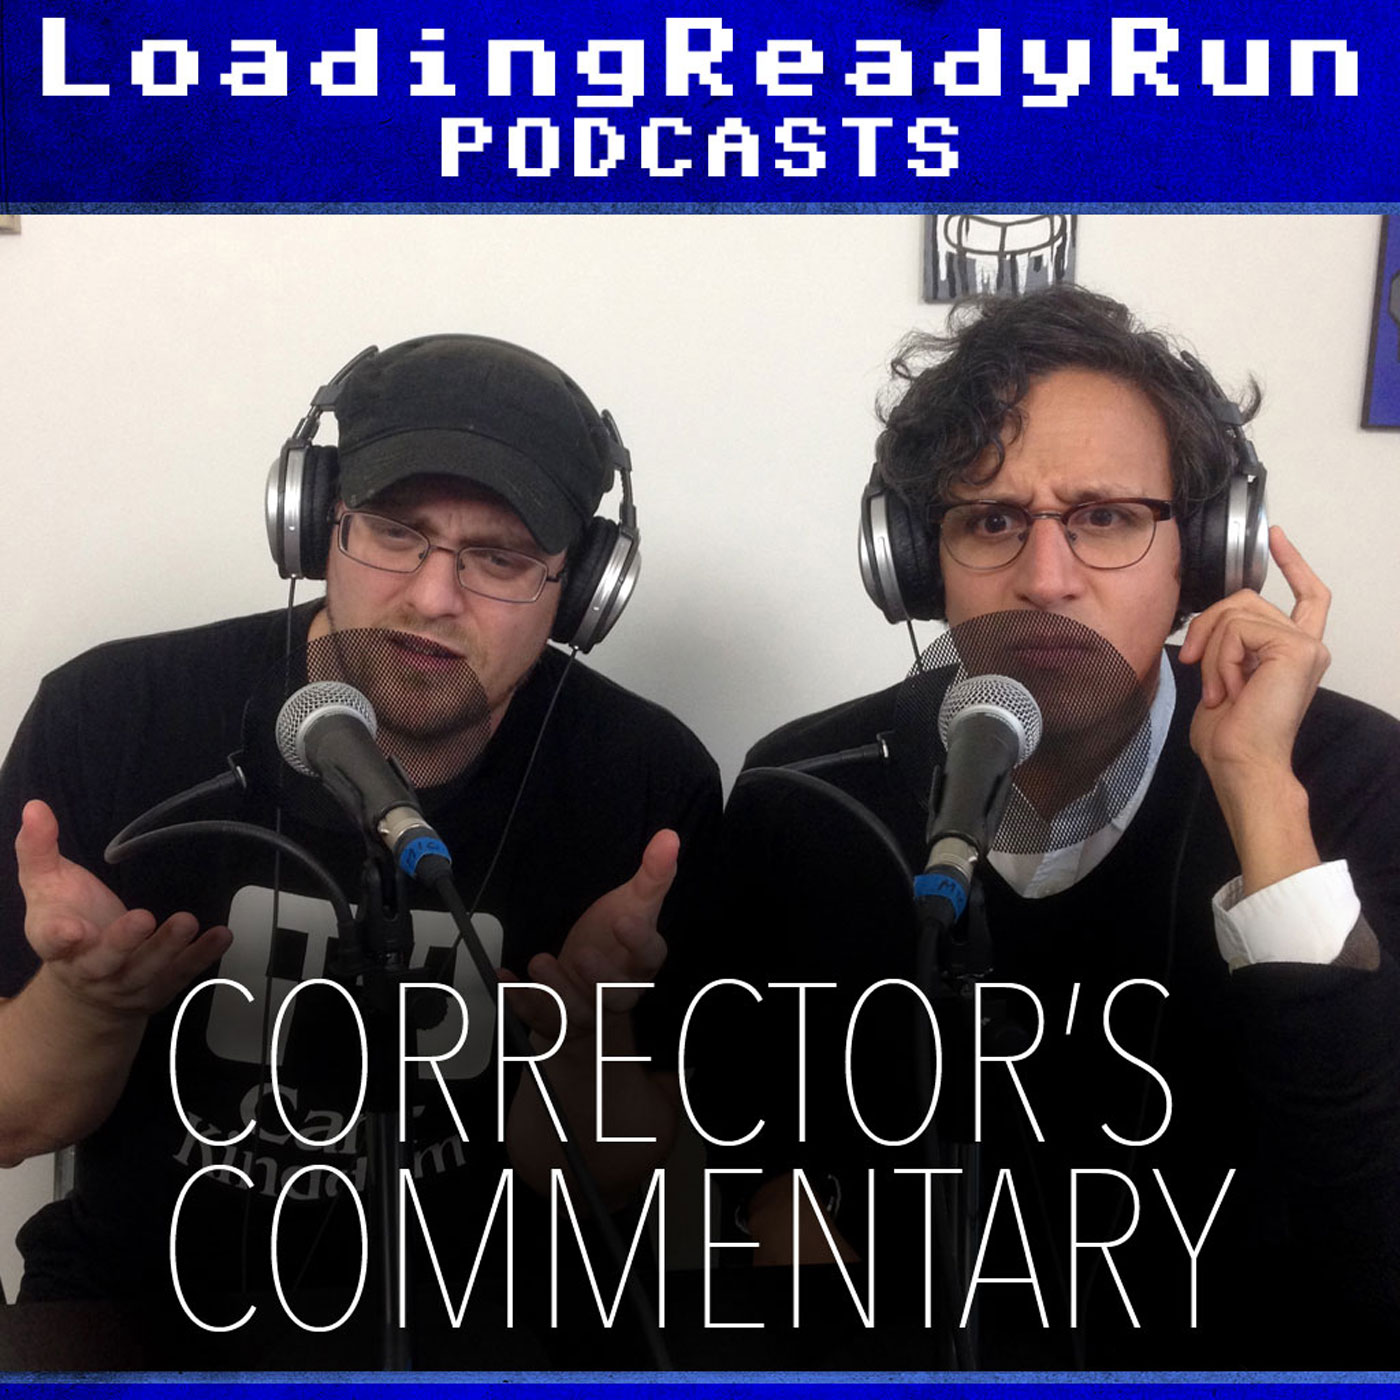 Corrector's Commentary - LoadingReadyRun